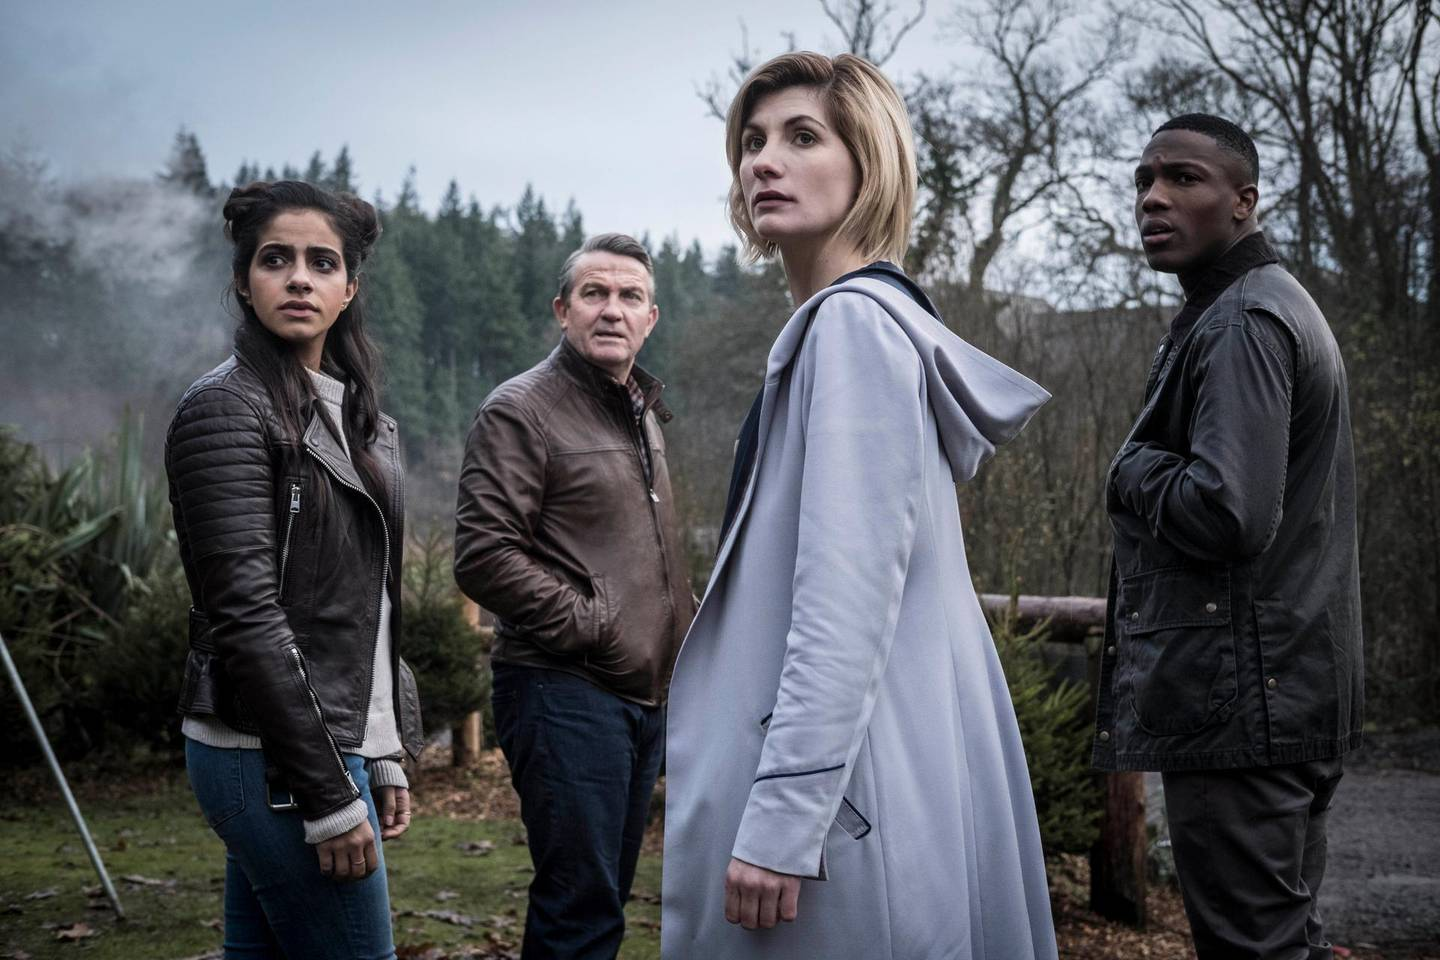 Picture Shows: Yasmin Khan (MANDIP GILL), Graham O'Brien (BRADLEY WALSH), The Doctor (JODIE WHITTAKER), Ryan Sinclair (TOSIN COLE)  in Doctor Who S11. Courtesy BBC / BBC Studios